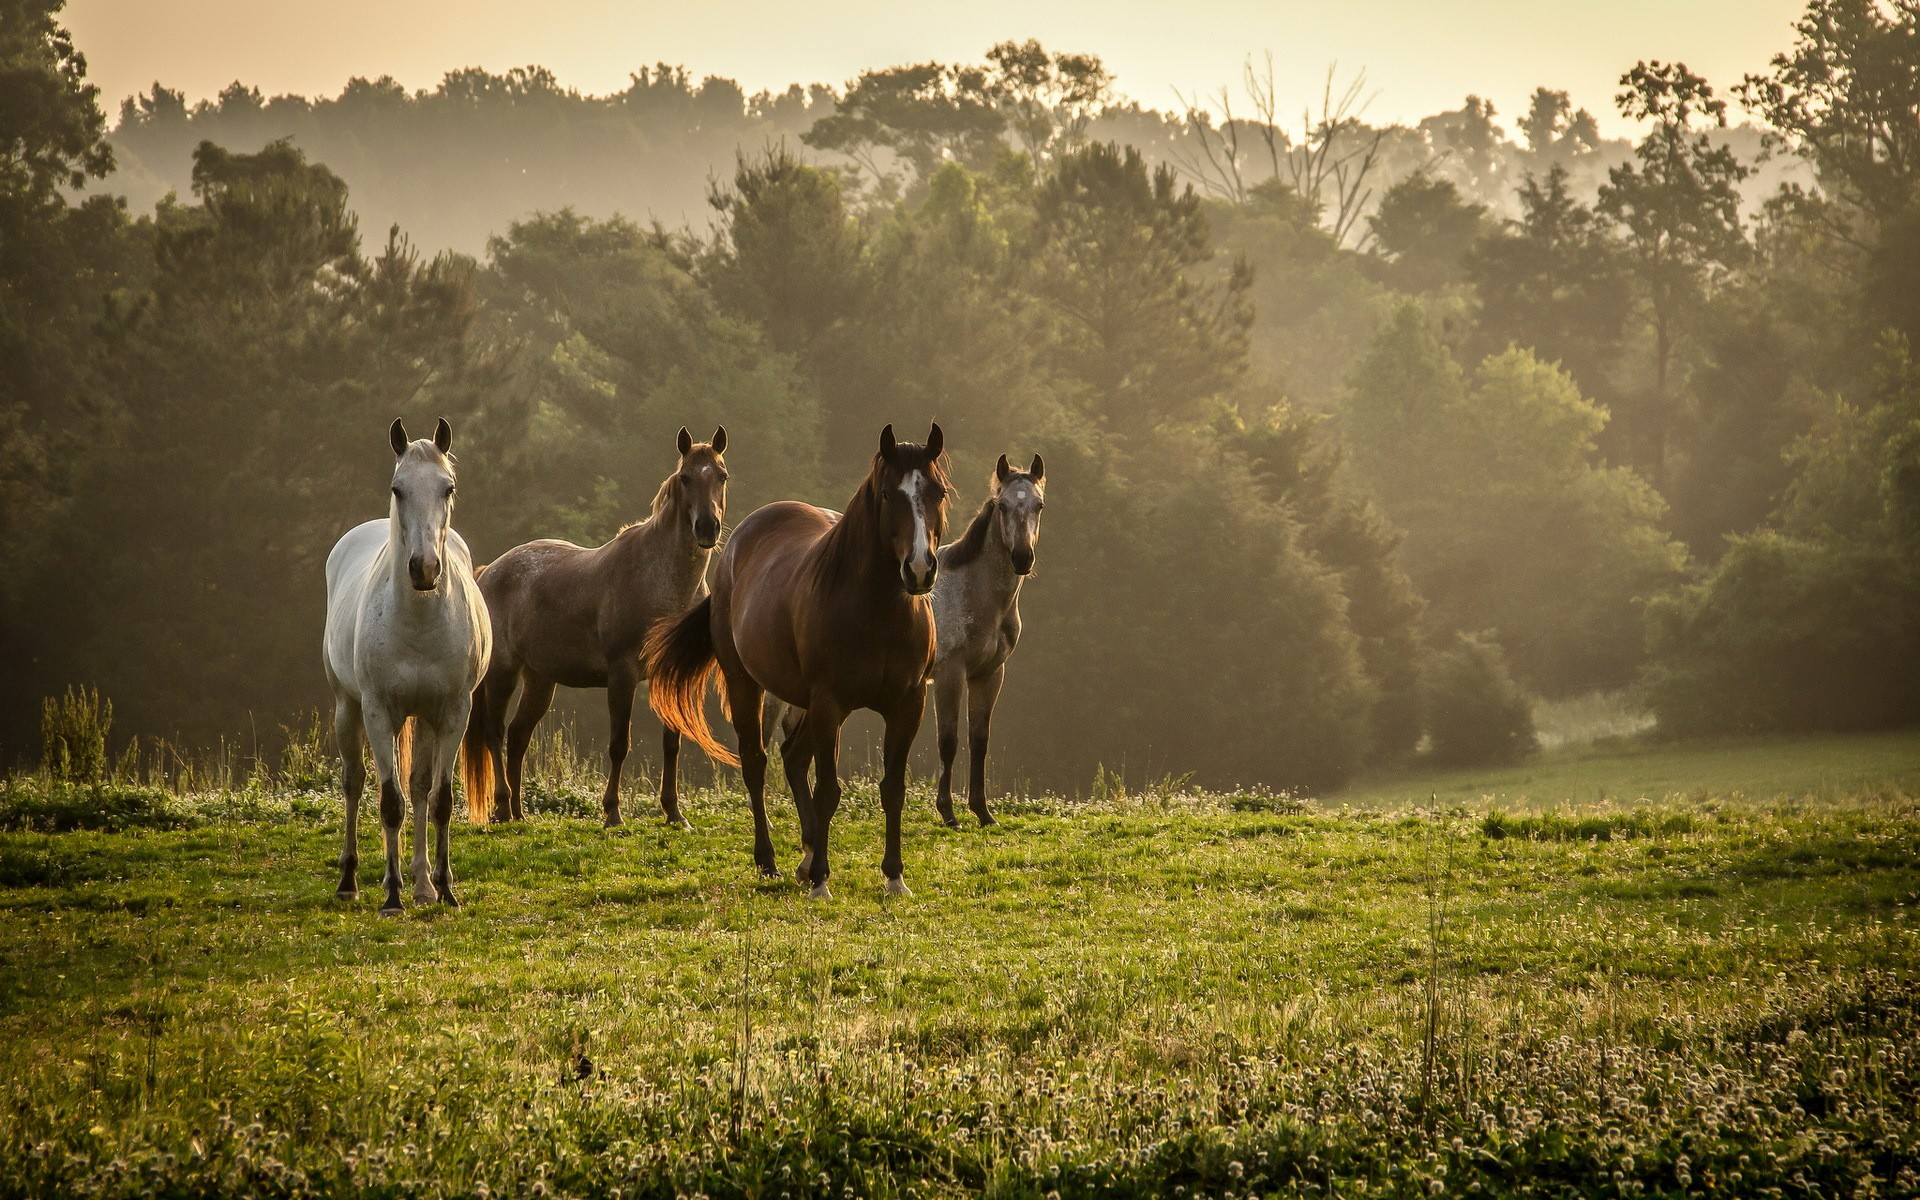 Daily wallpaper horses in the wilderness i like to waste my time altavistaventures Image collections